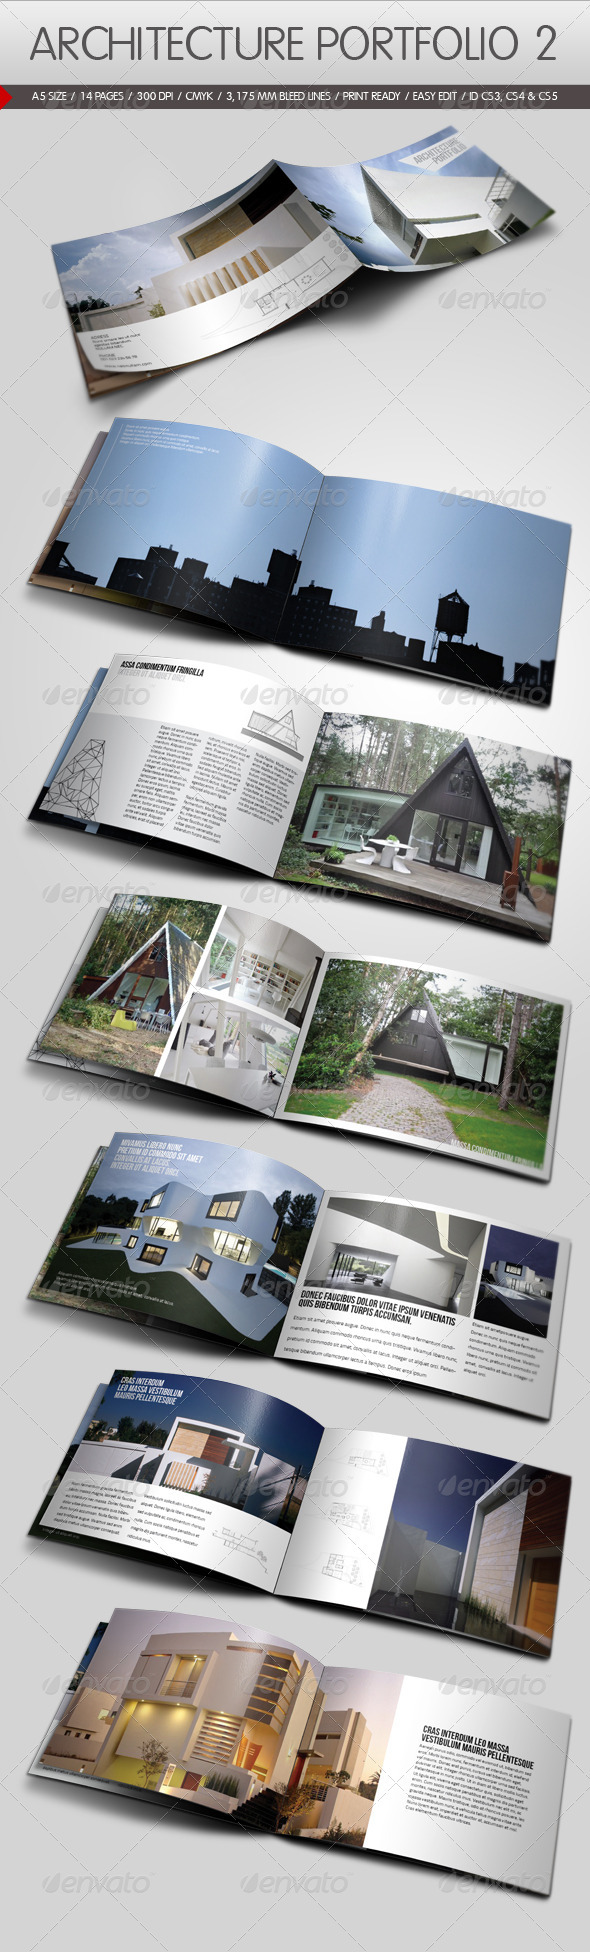 Free Indesign Portfolio Template - 20 best indesign brochure templates for creative business marketing creative agency indesign